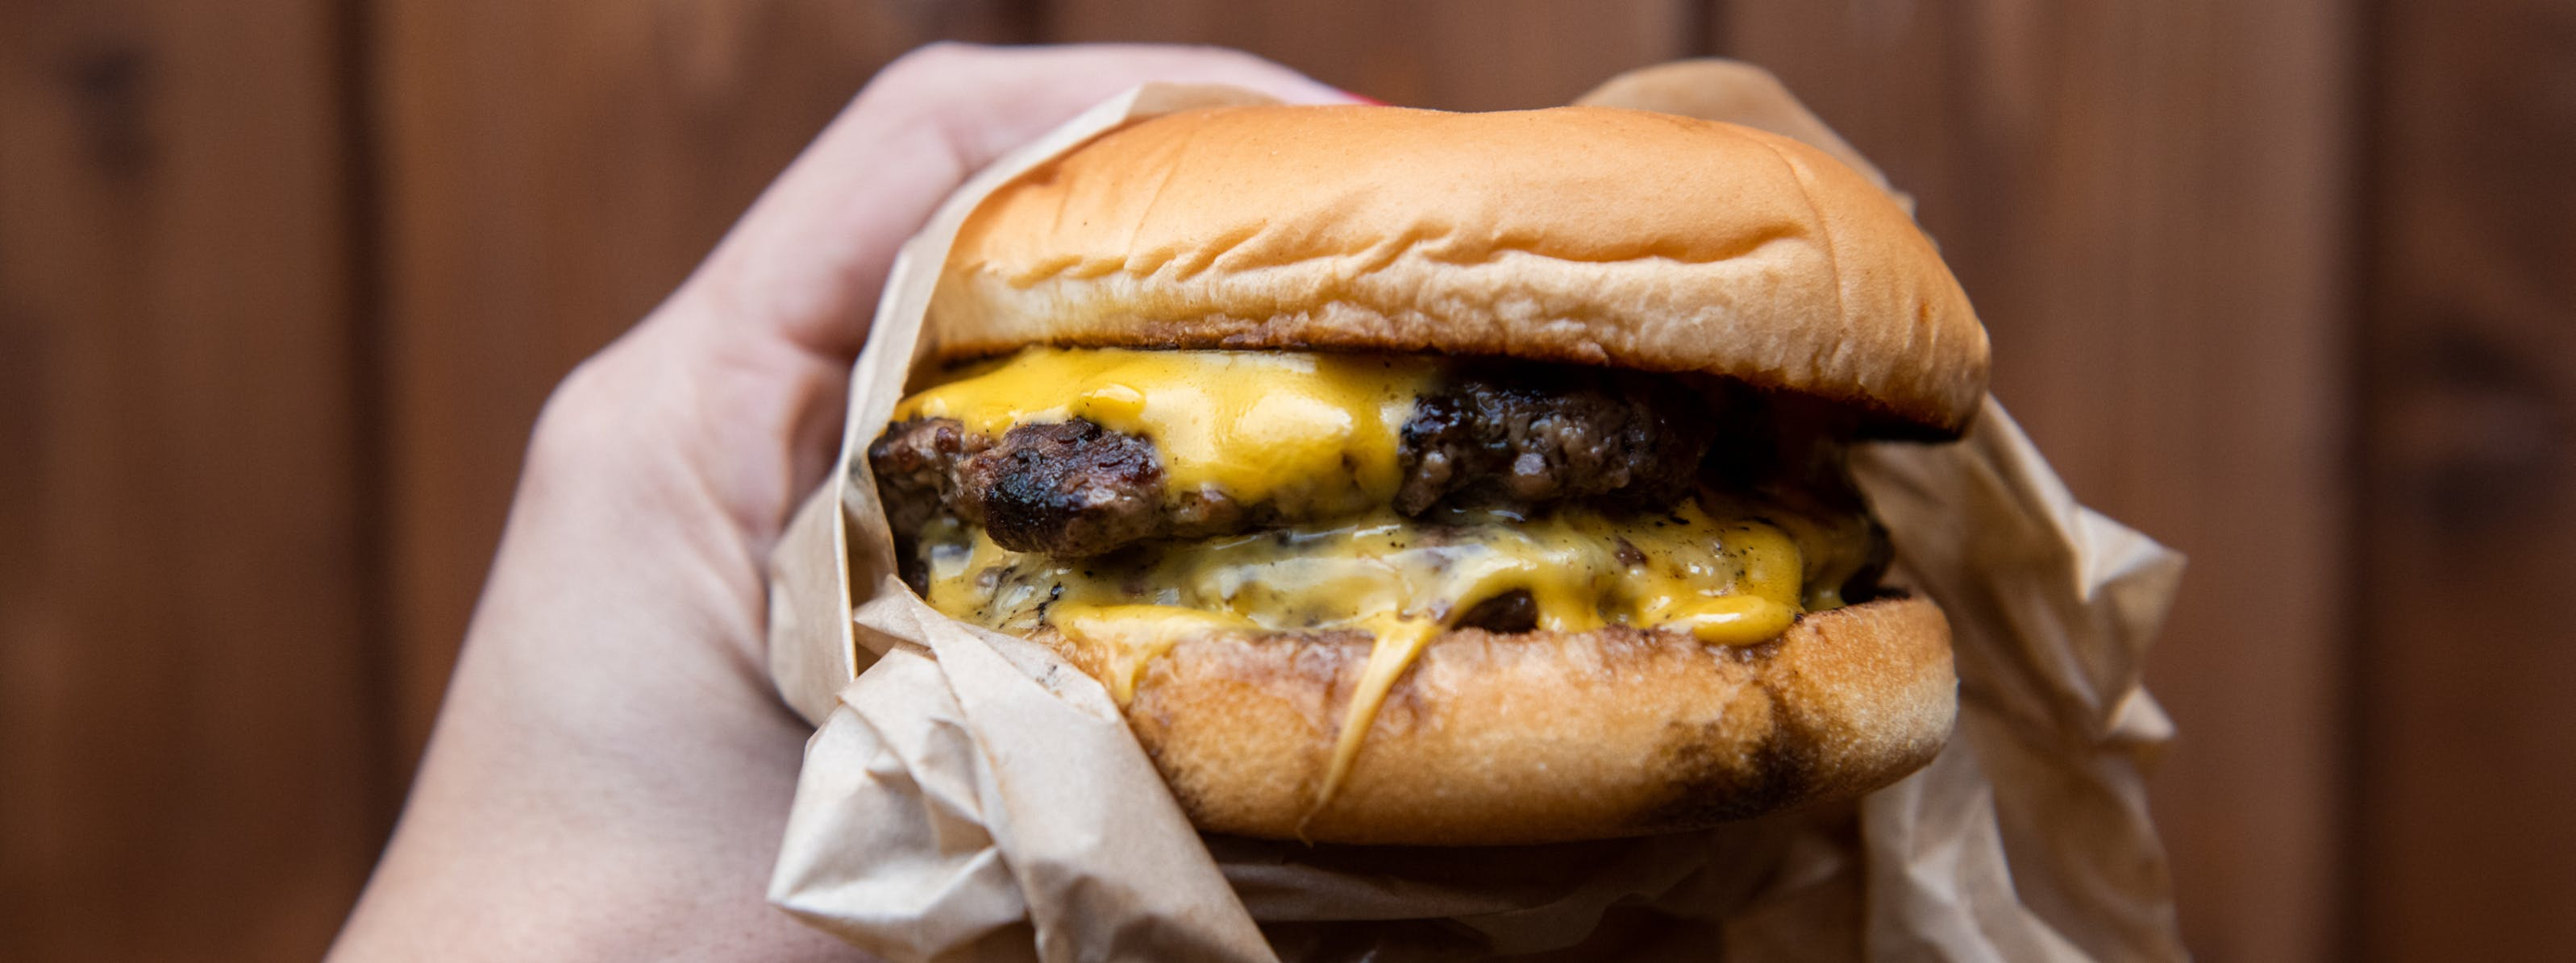 The Seattle Burger Delivery & Takeout Guide - Seattle - The Infatuation